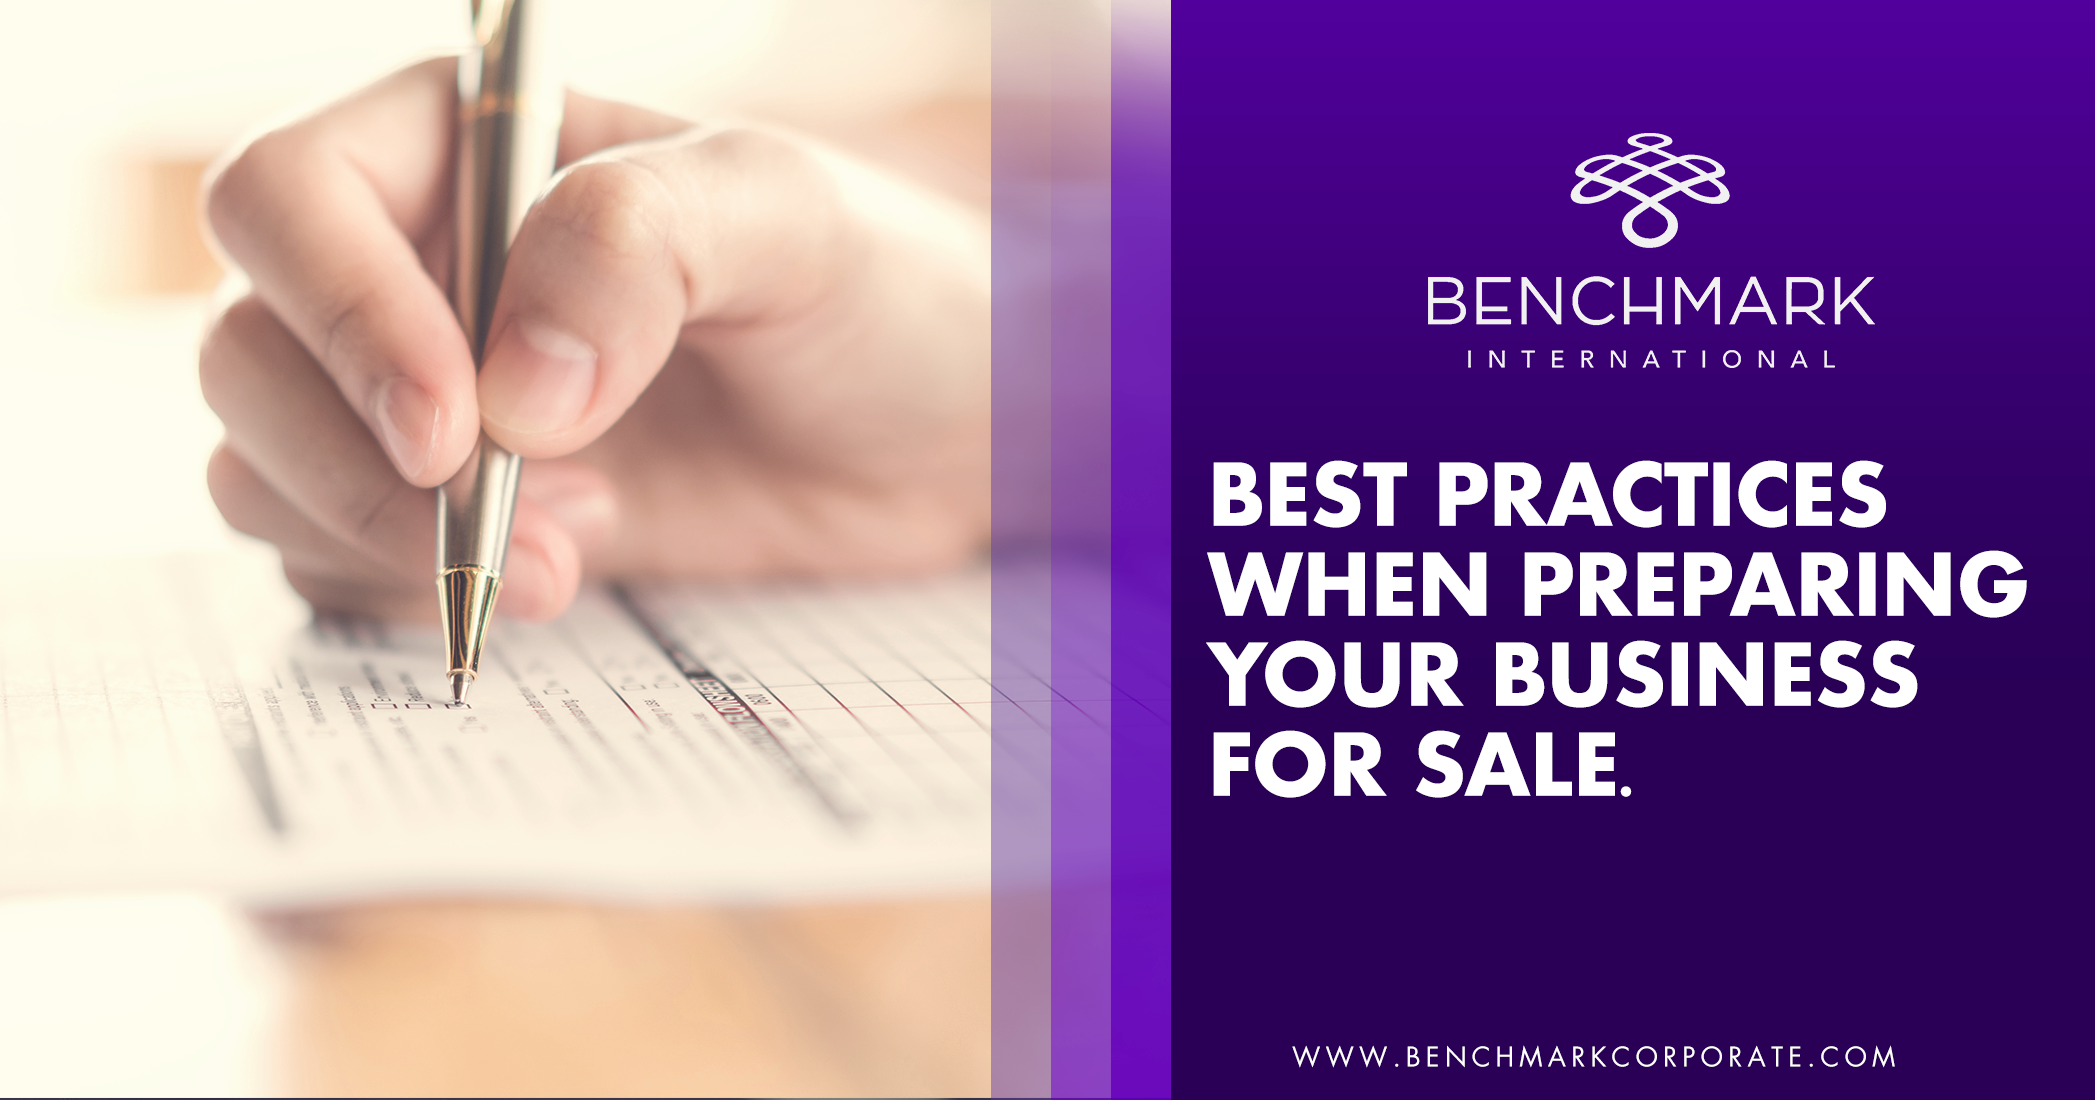 Best Practices When Preparing Your Business for Sale